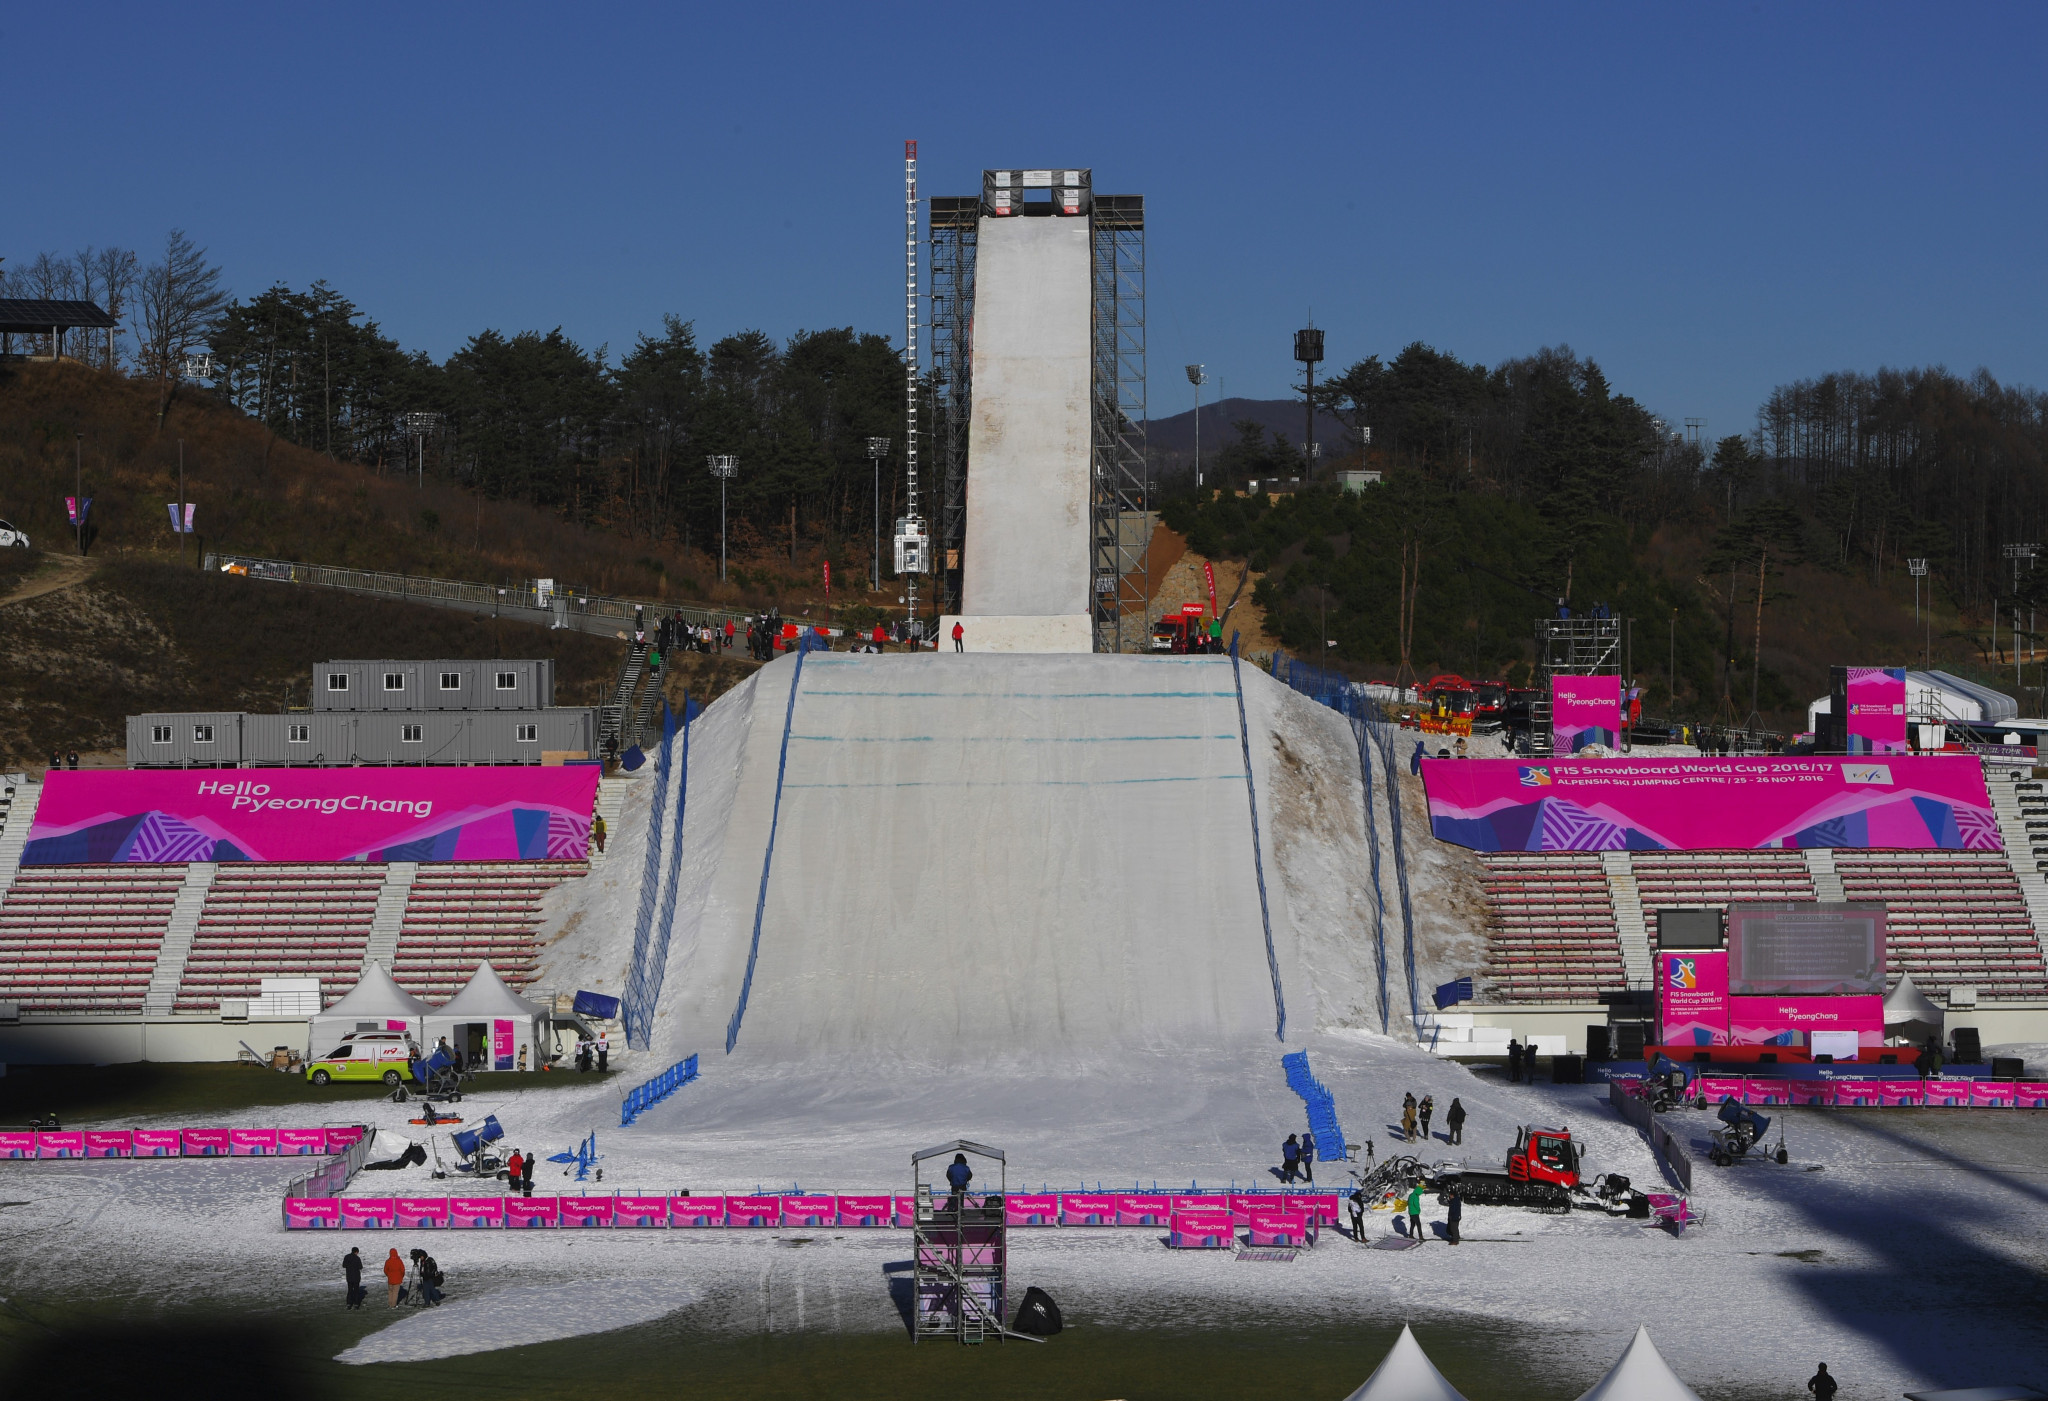 NOCs have called for a swift resolution to the Russian investigations before Pyeongchang 2018 ©Getty Images